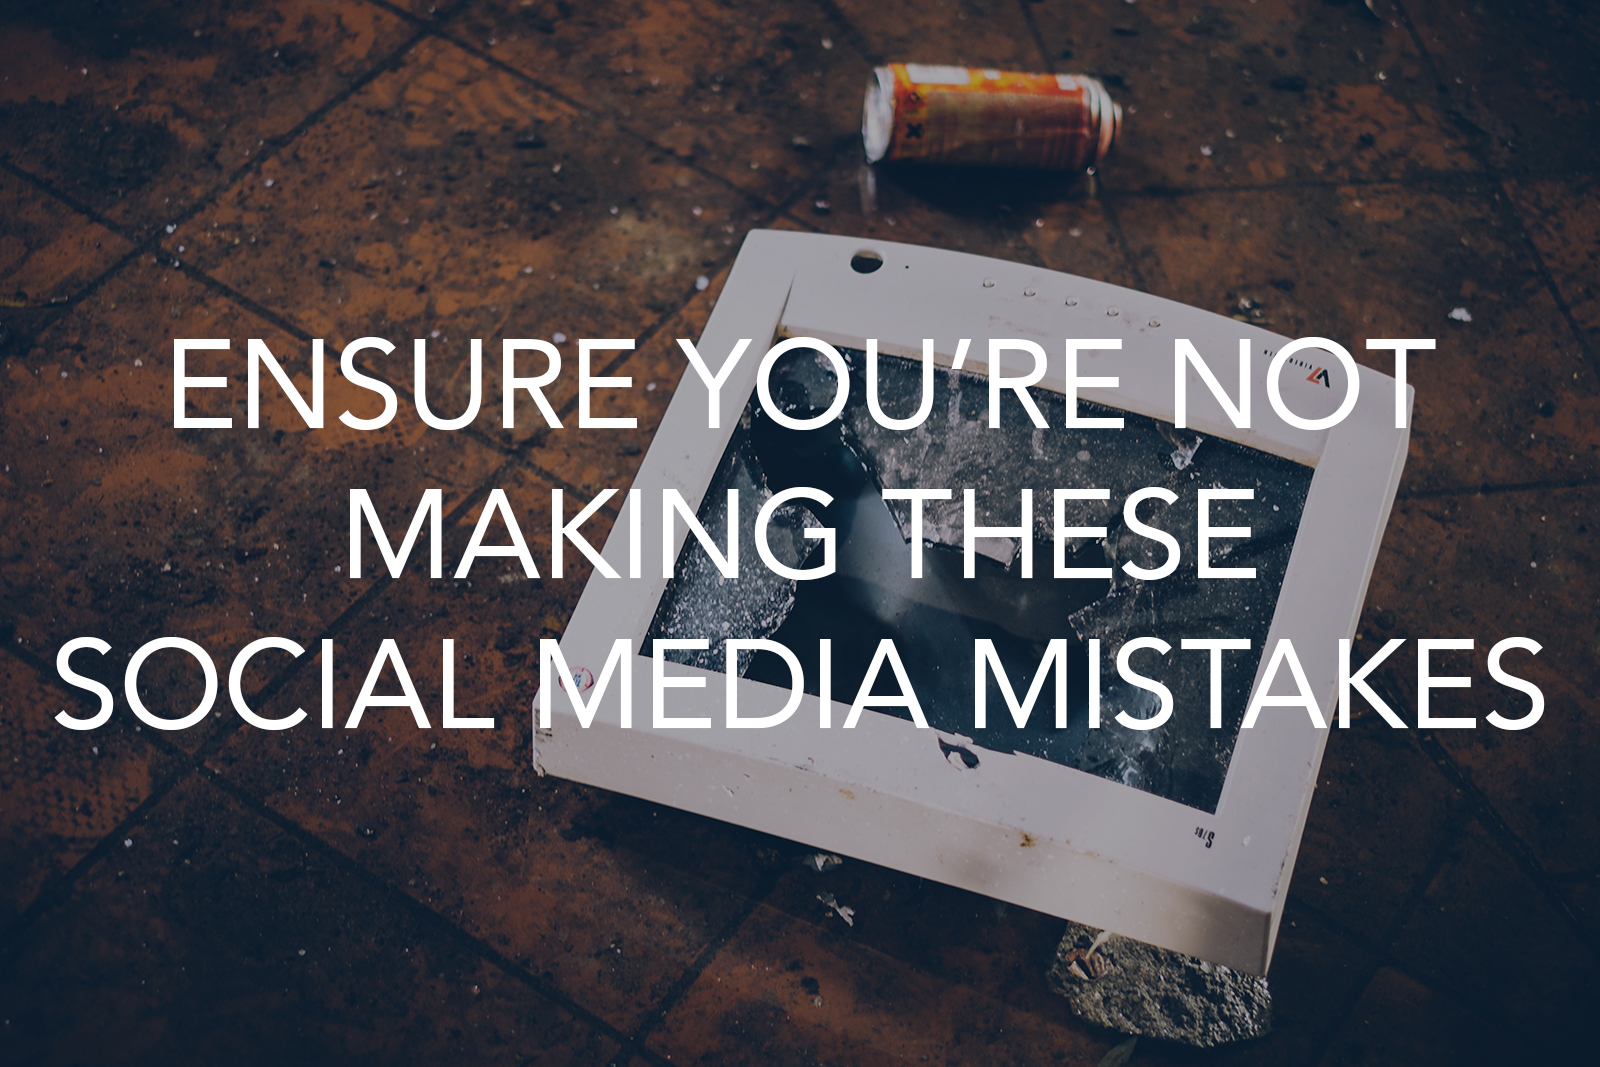 Ensure you're not making these social media mistakes